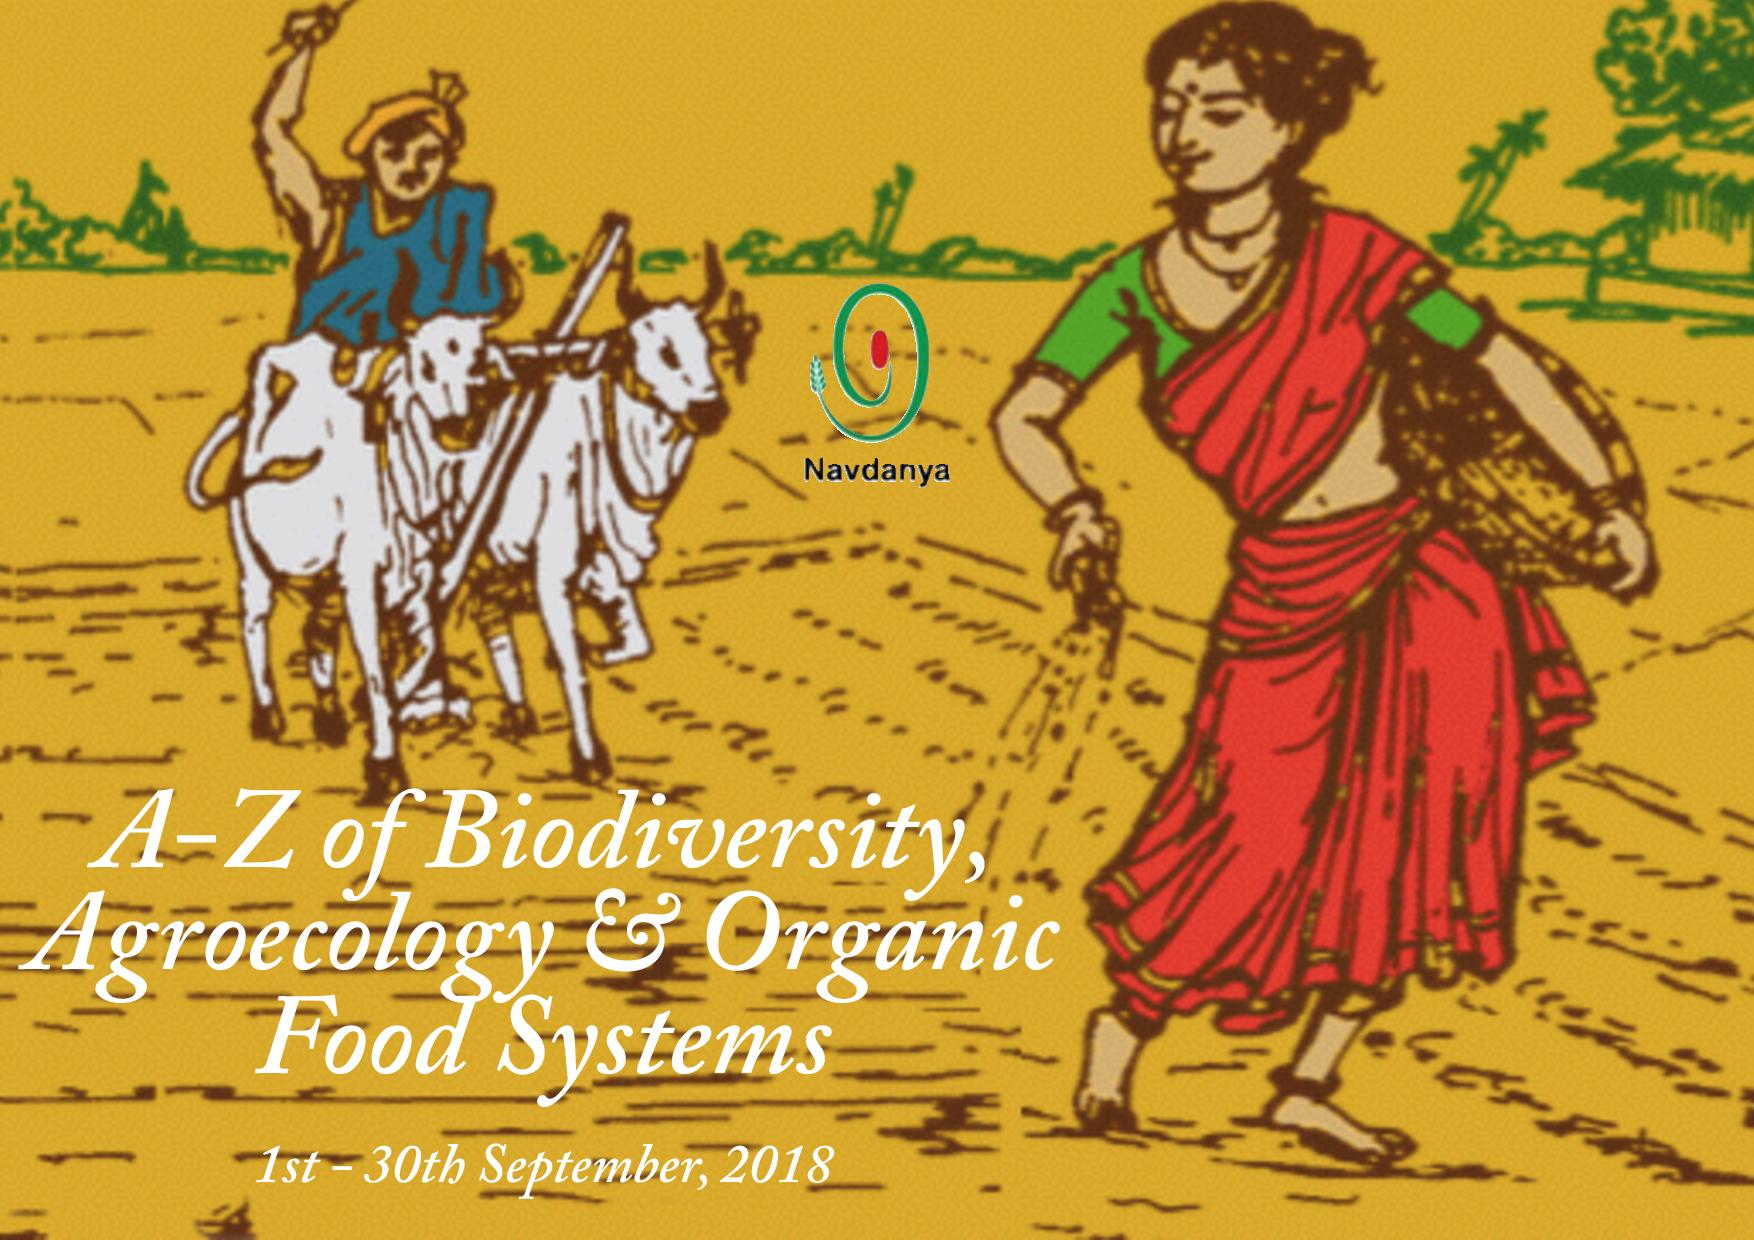 A-Z of Biodiversity, Agroecology & Organic Food Systems